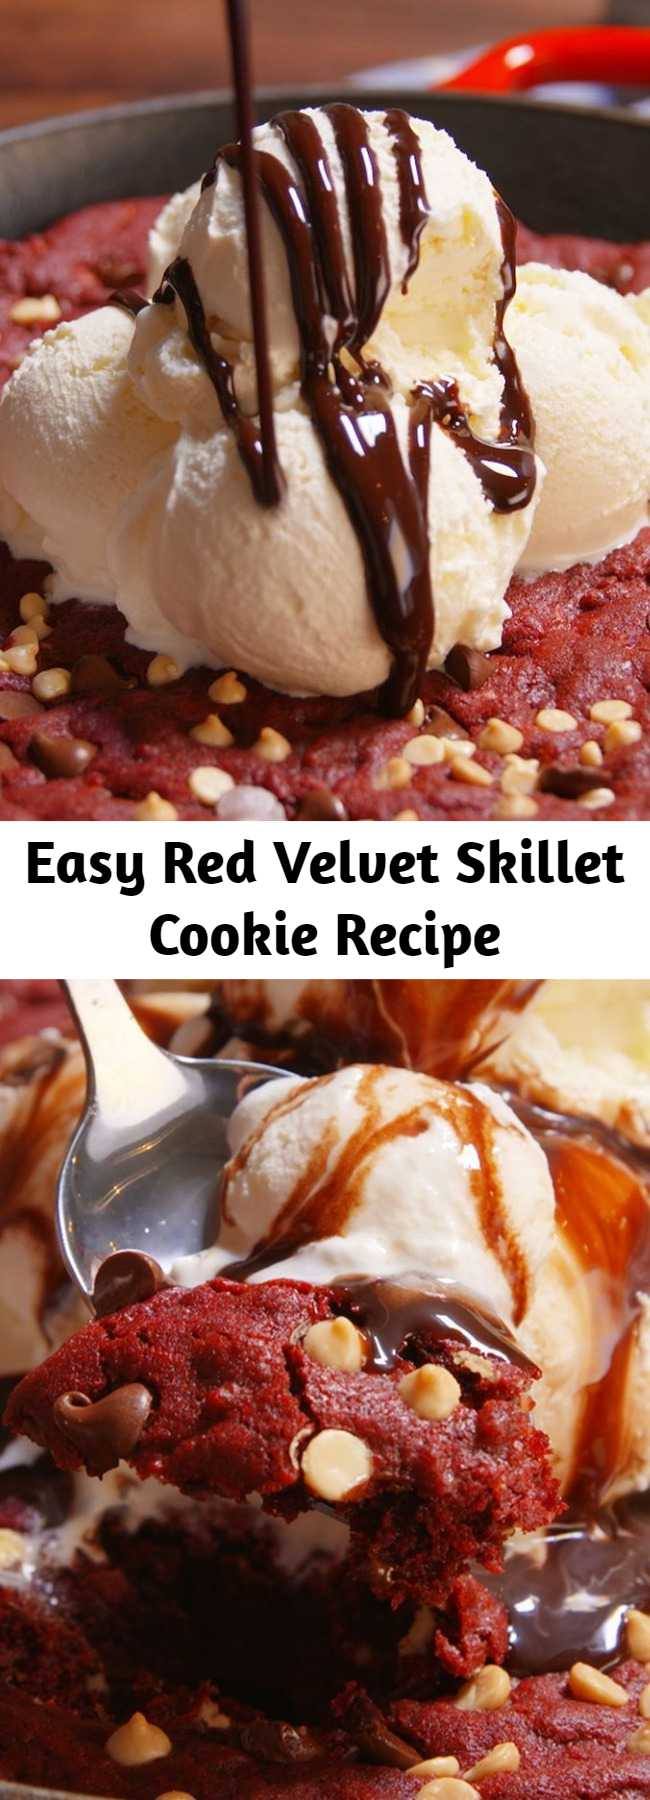 Easy Red Velvet Skillet Cookie Recipe - Looking for an easy red velvet dessert? This Red Velvet Skillet Cookie Recipe is the best. Grab a spoon and go at it.